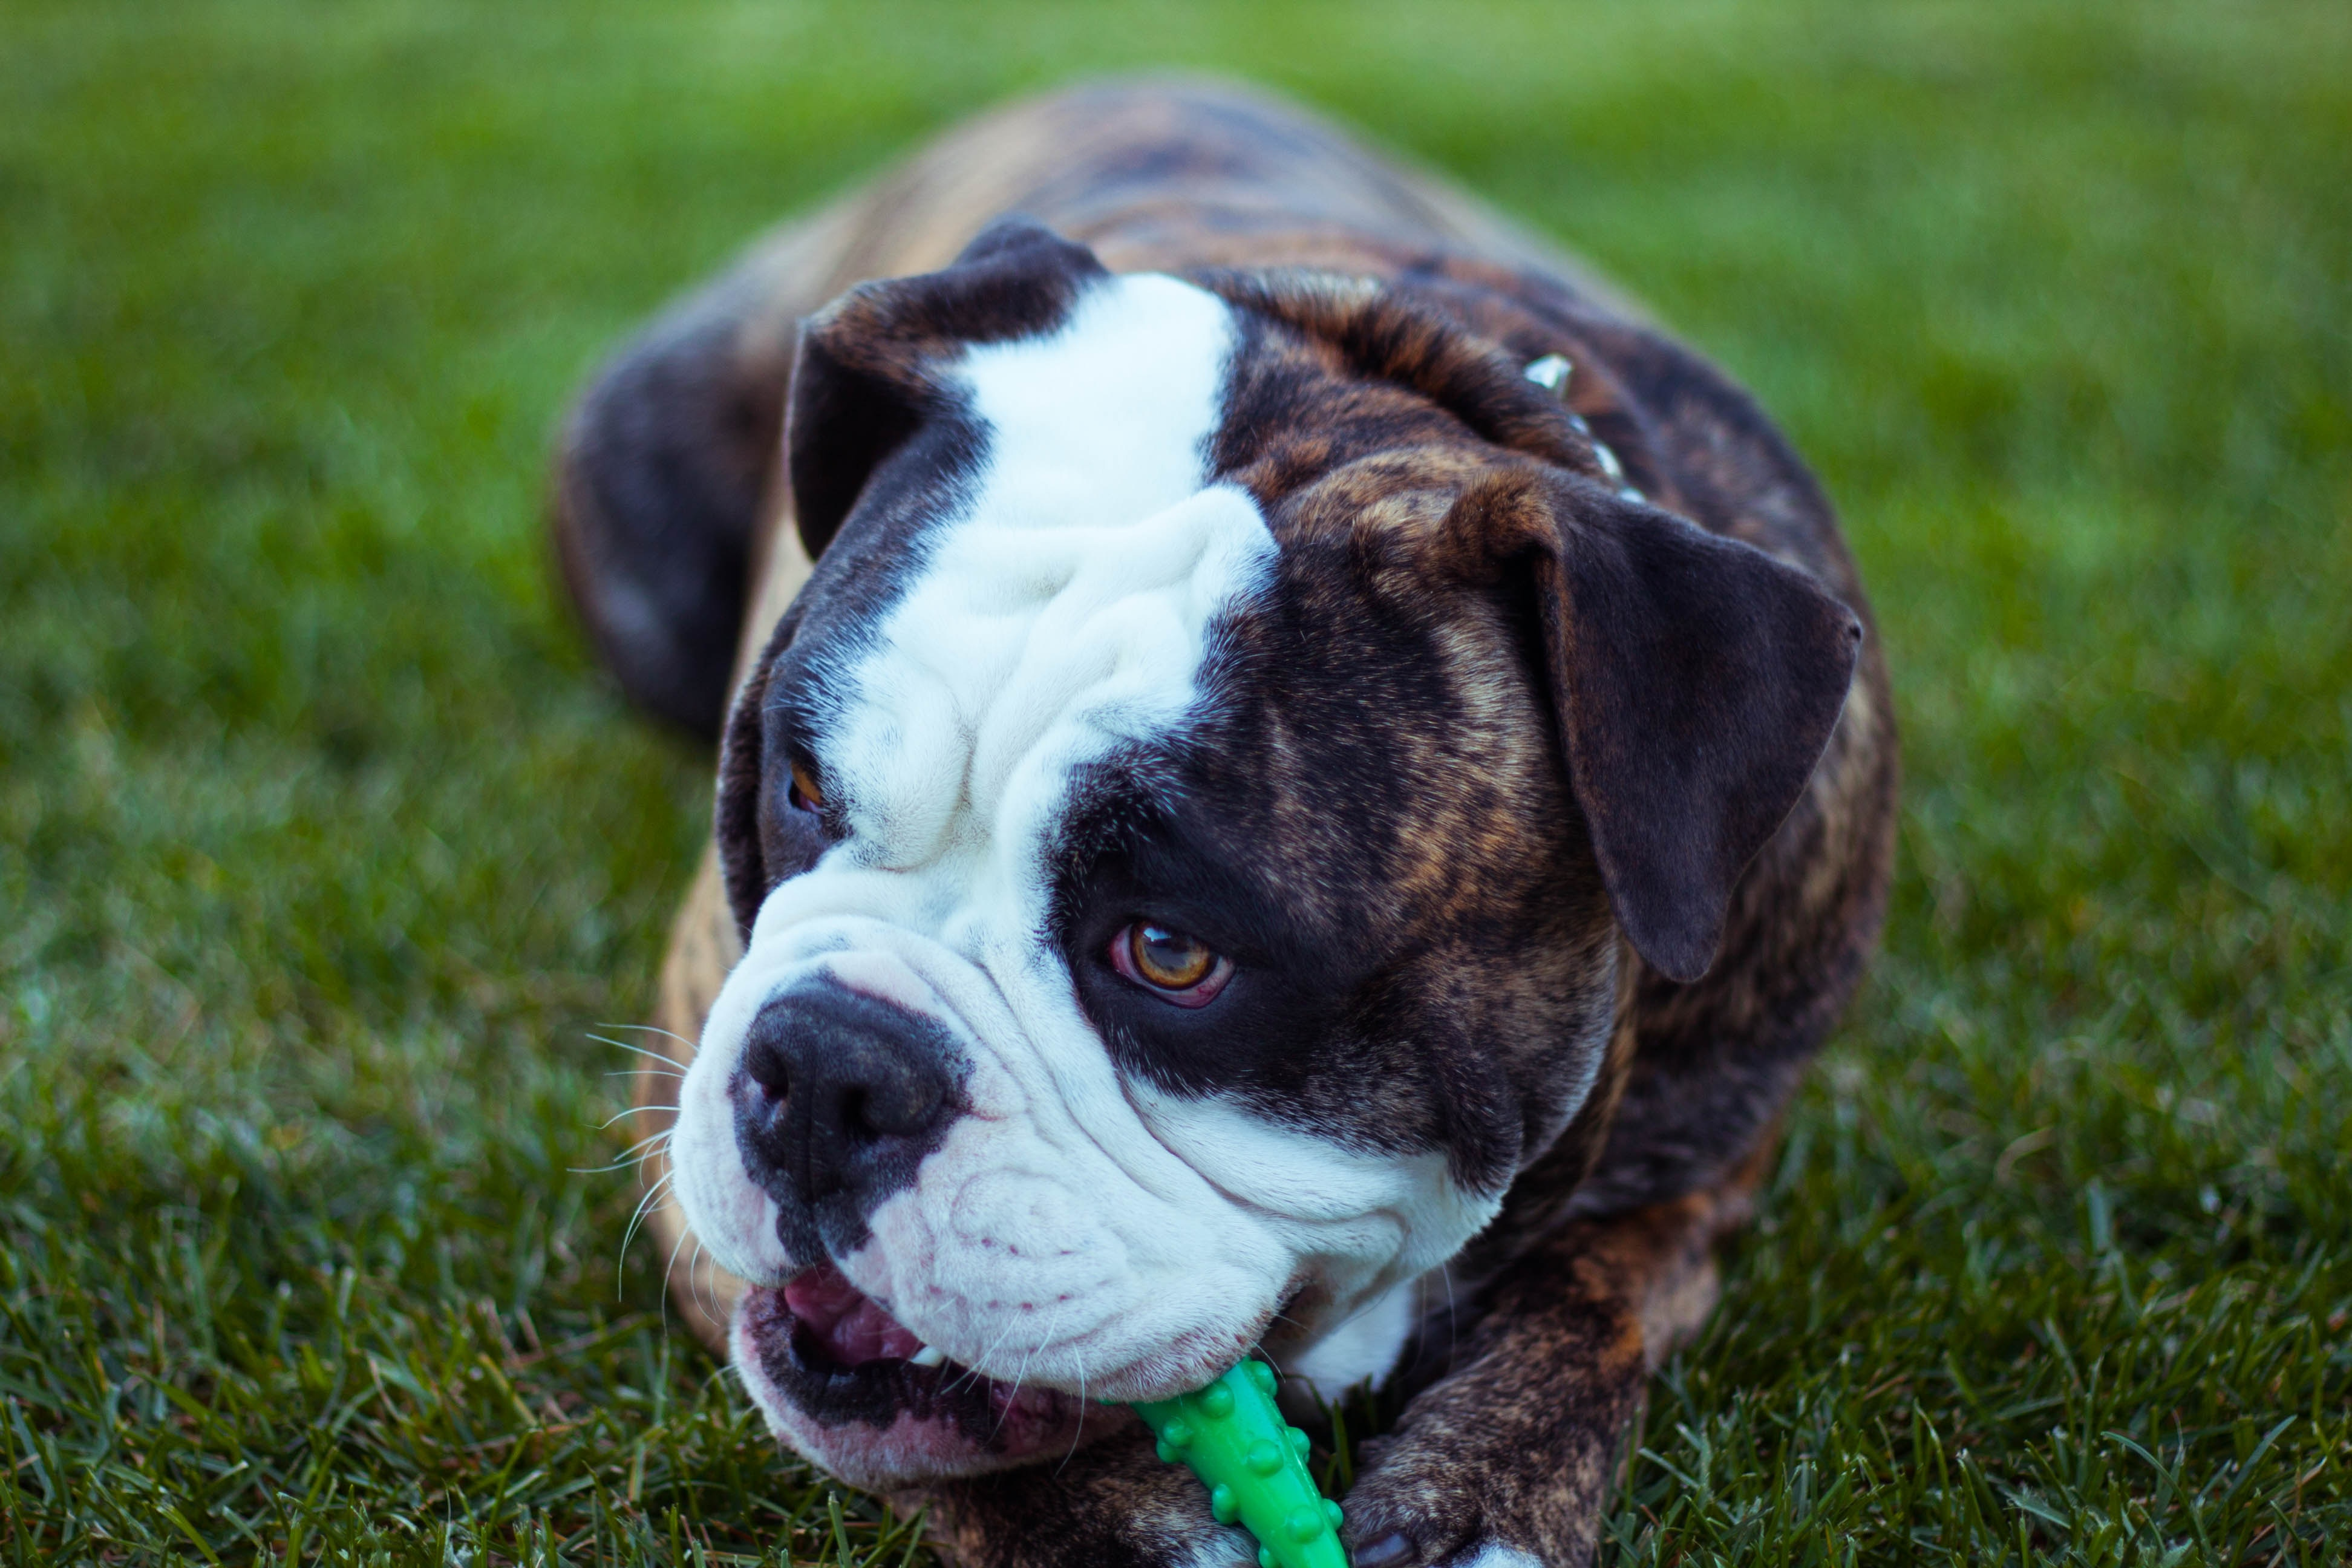 131082 download wallpaper Animals, Dog, Bulldog, Muzzle, Playful screensavers and pictures for free